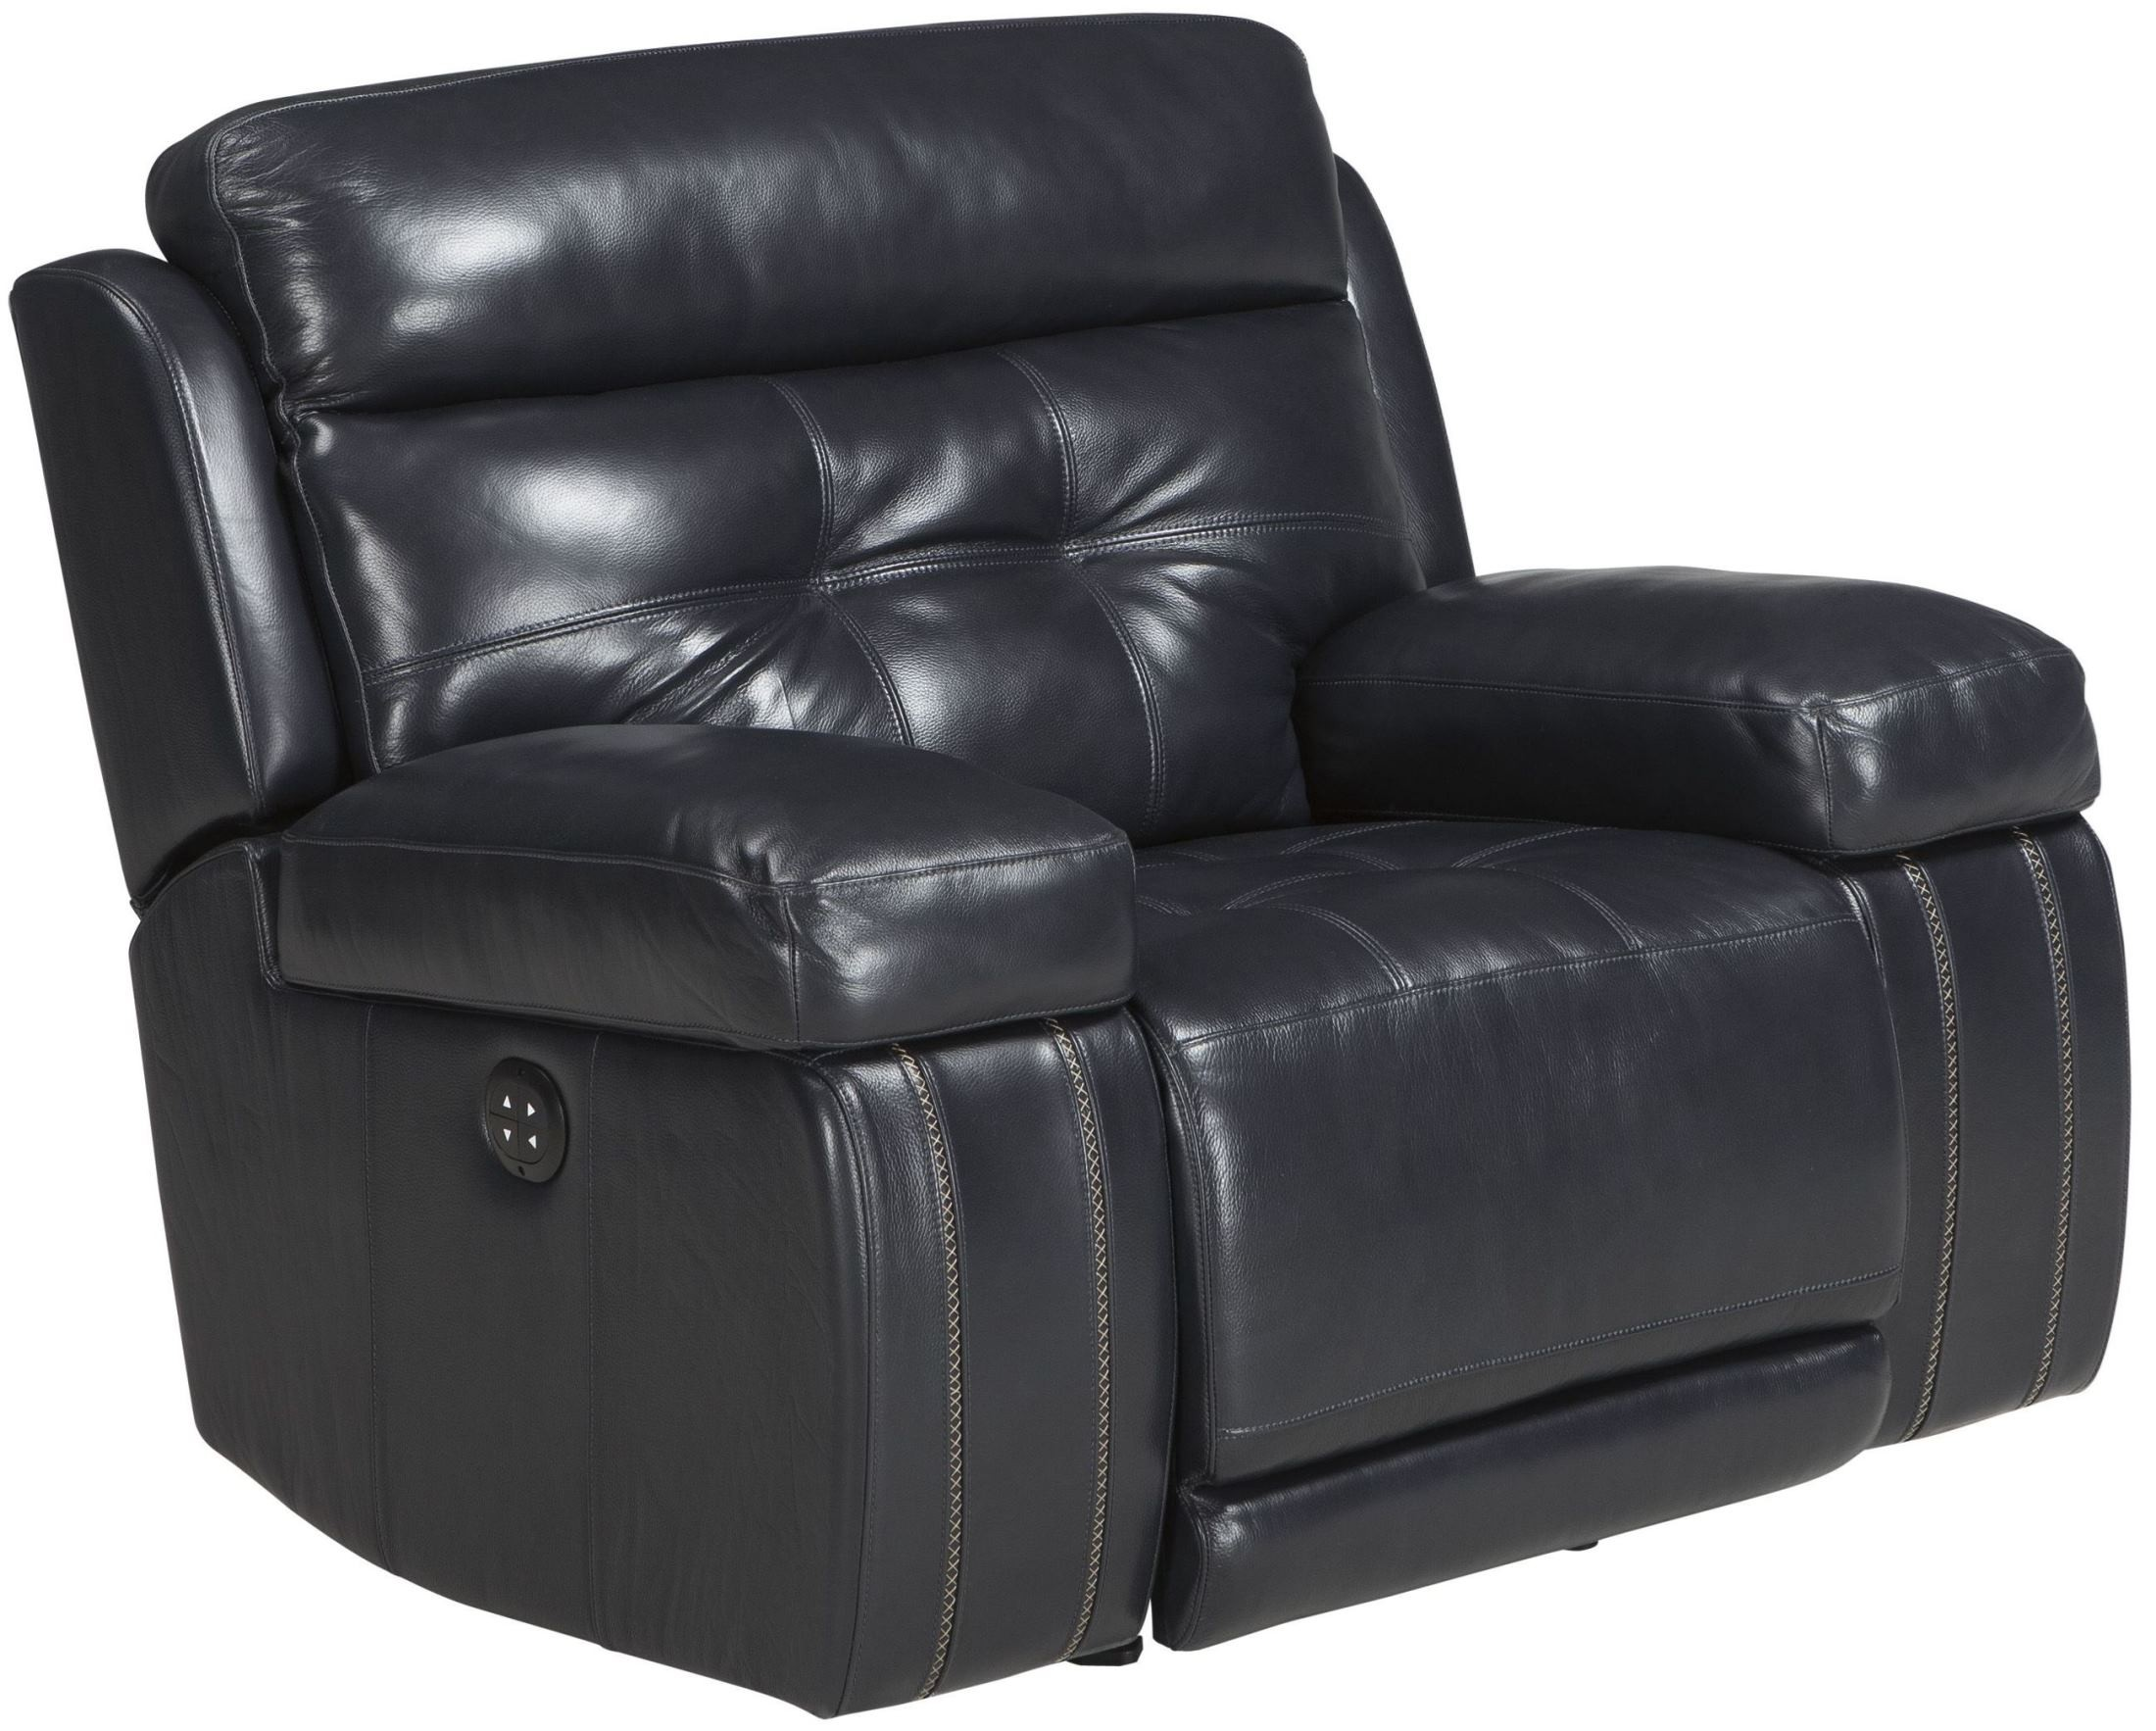 Graford Navy Power Recliner With Adjustable Headrest From